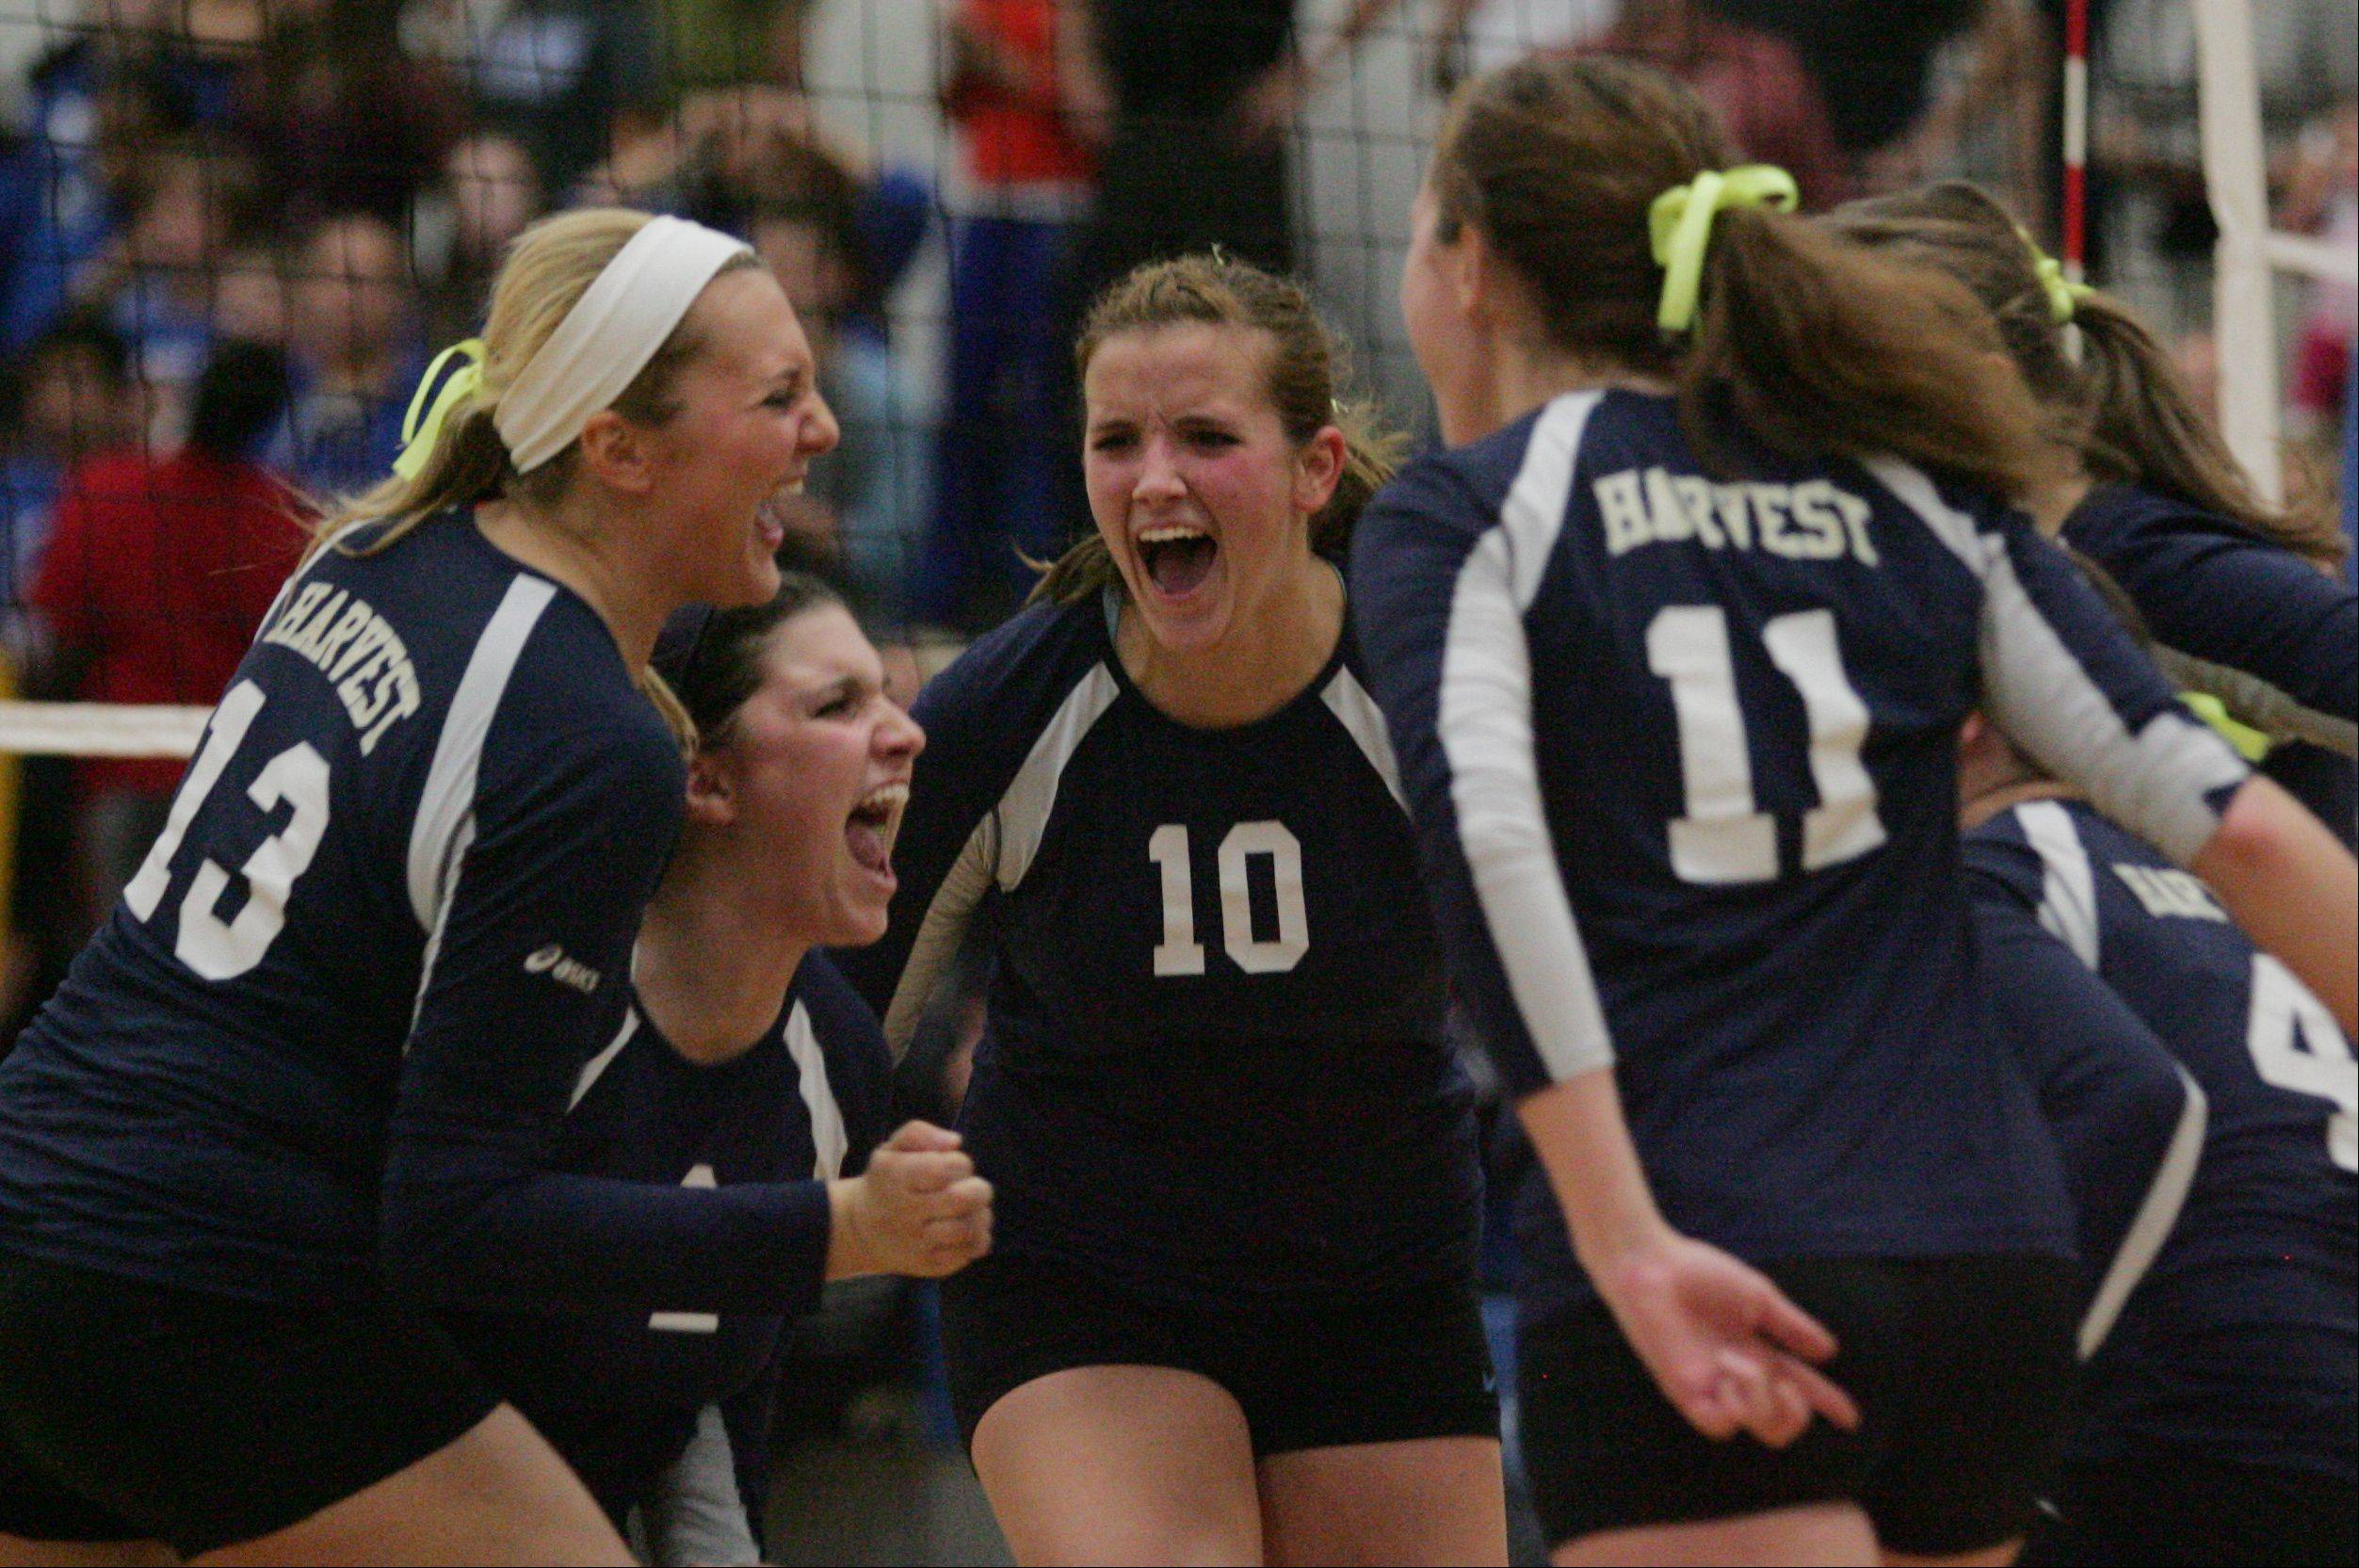 Harvest Christian players Erica Manusos, left, Jordan Sollars, Sydney Doby and Chloe Corbett celebrate their match-winning point Thursday night against Westminster Christian in the regional final.